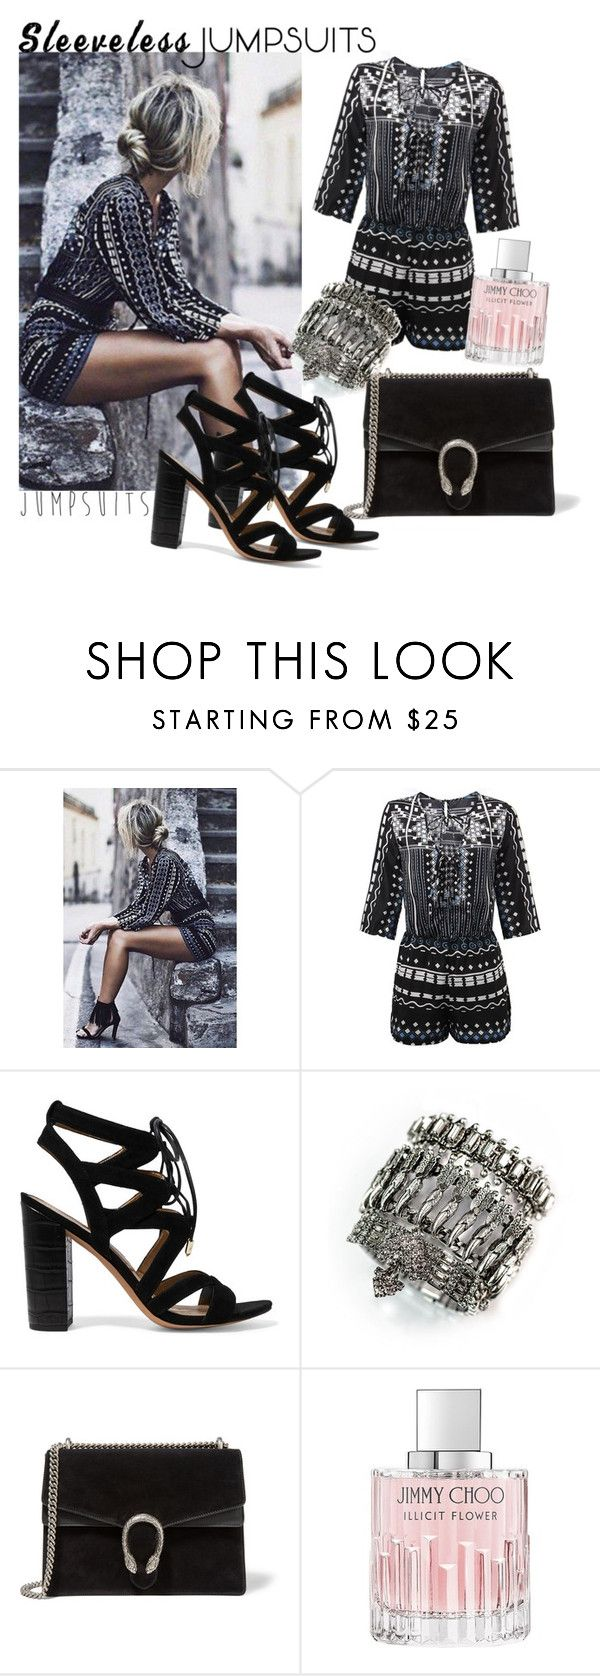 """viernes por la noche"" by andiibarba ❤ liked on Polyvore featuring Sam Edelman, DYLANLEX, Gucci, Jimmy Choo and sleevelessjumpsuits"